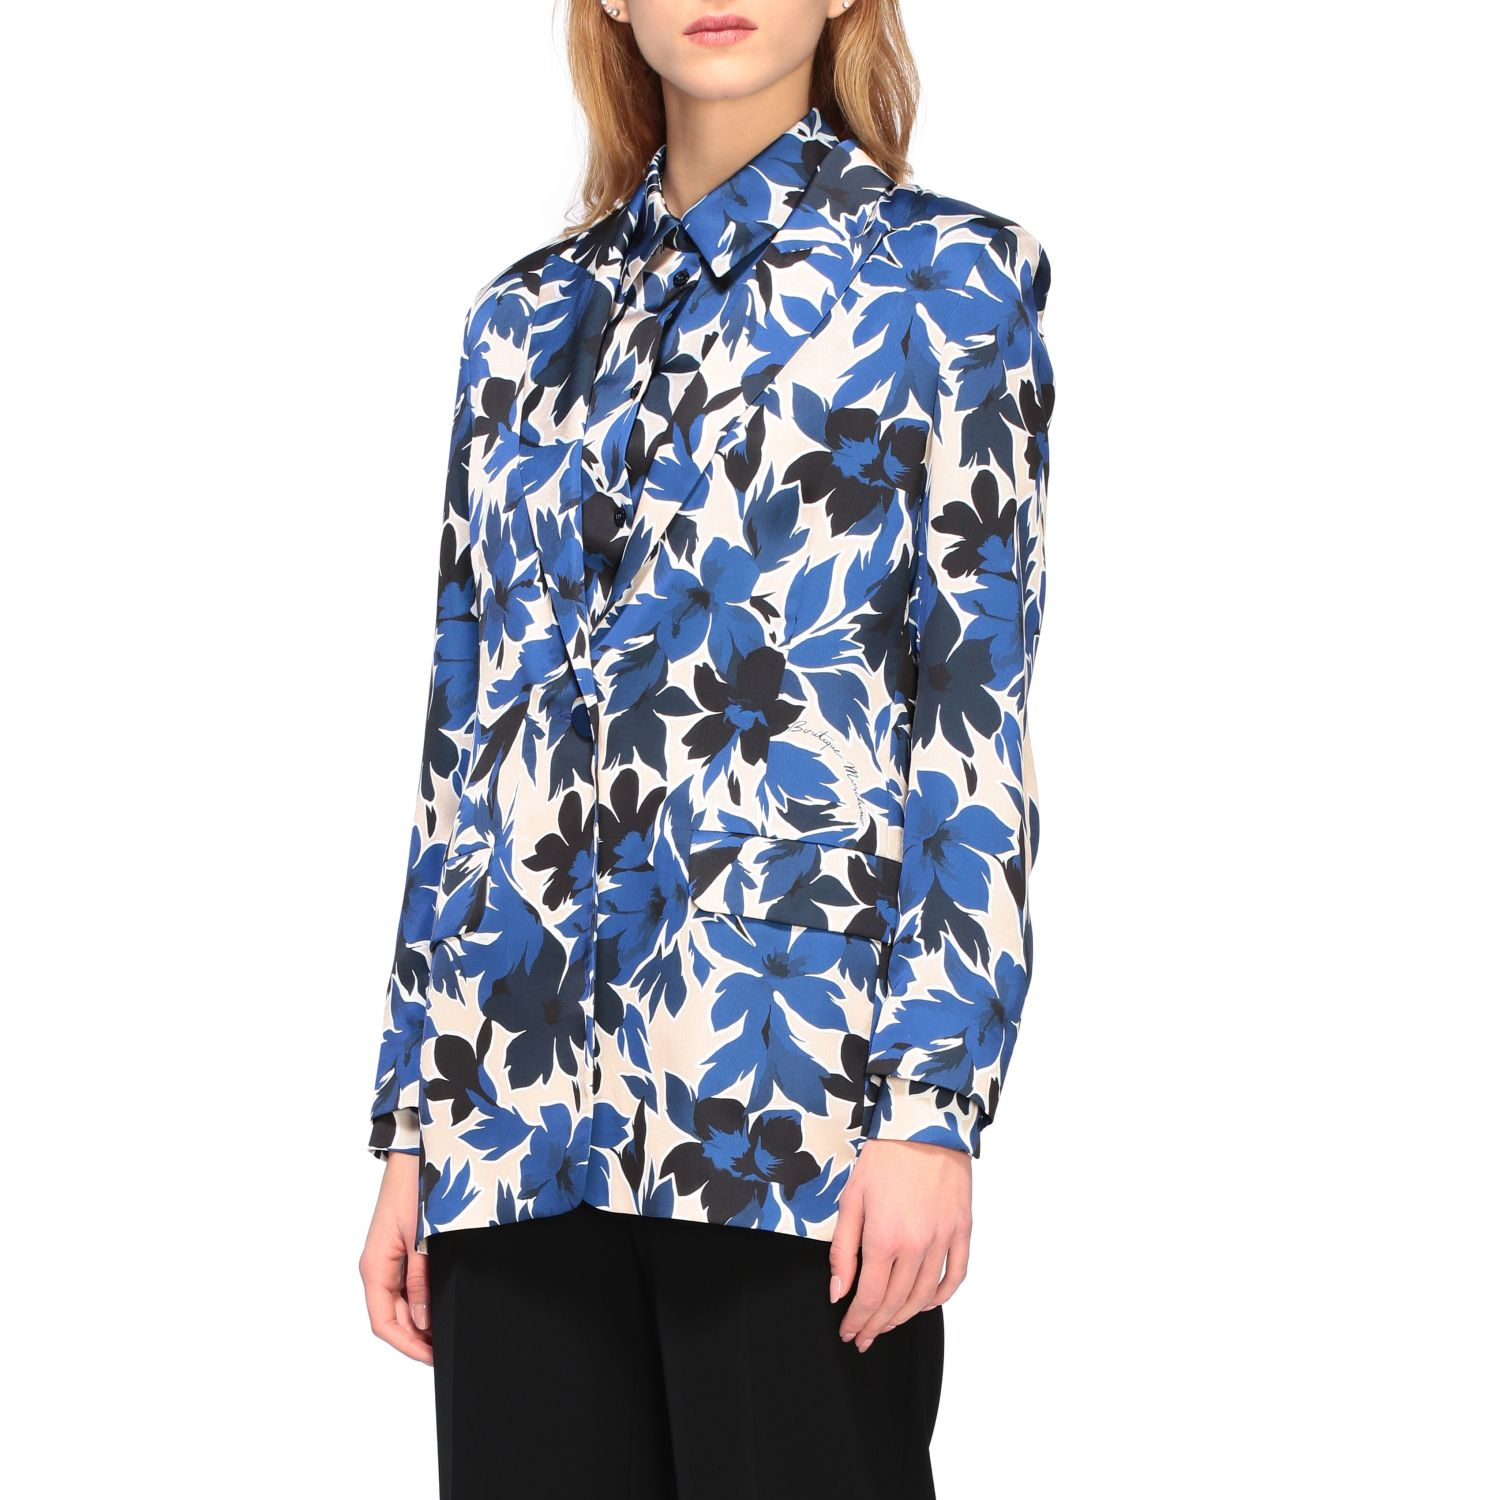 Blazer Boutique Moschino: Blazer women Boutique Moschino blue 4